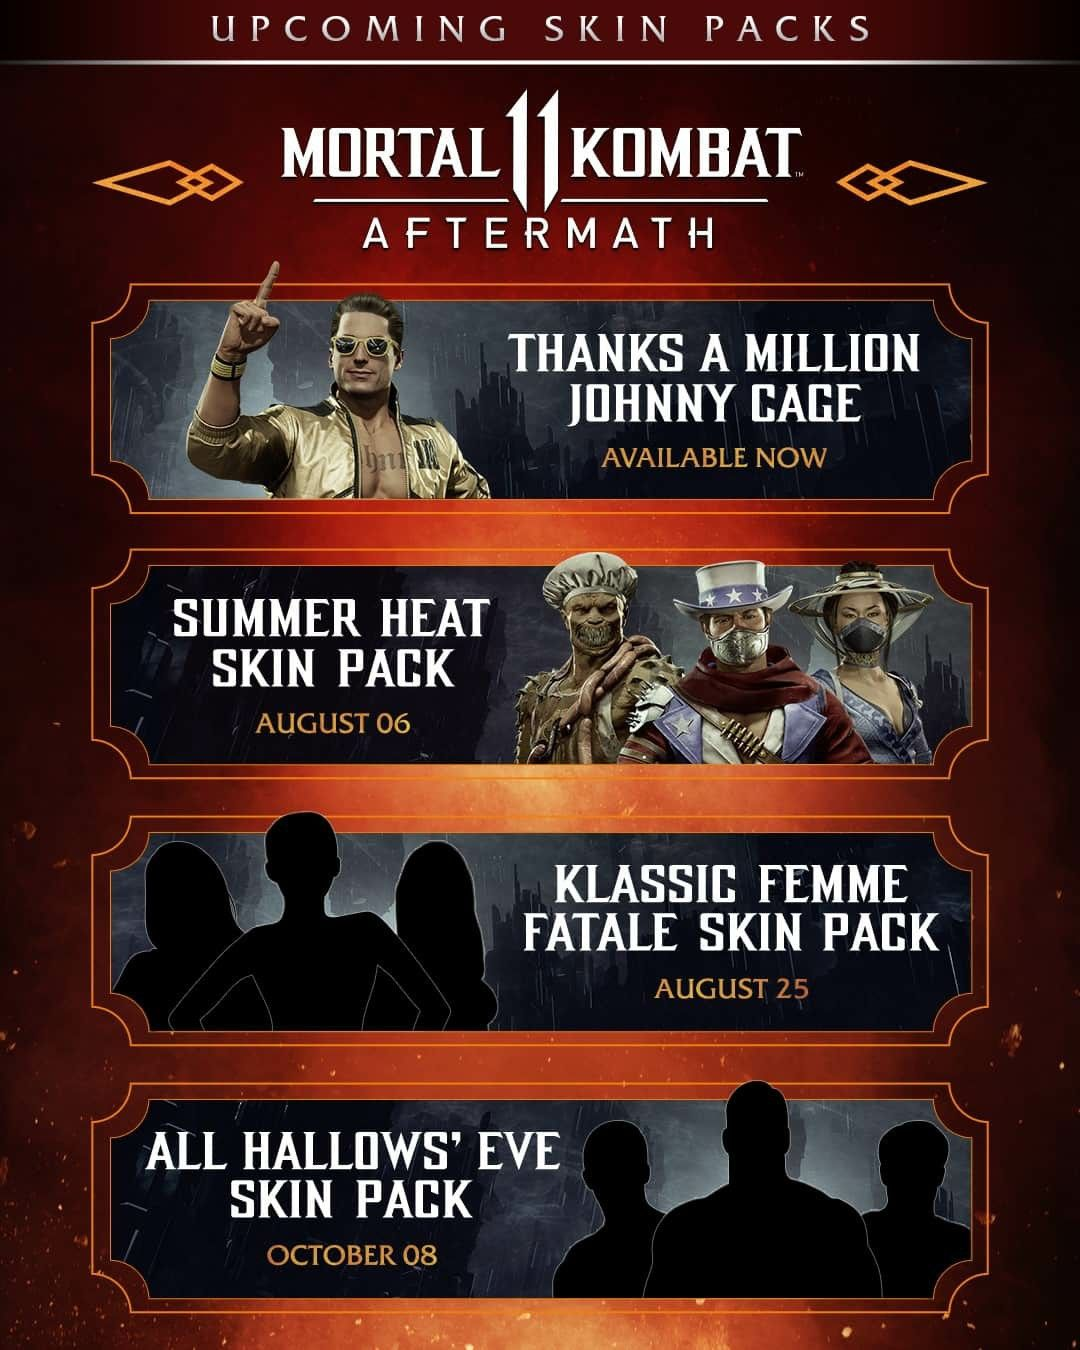 307 Best Mortal Kombat Images In 2020 Mortal Kombat Mortal